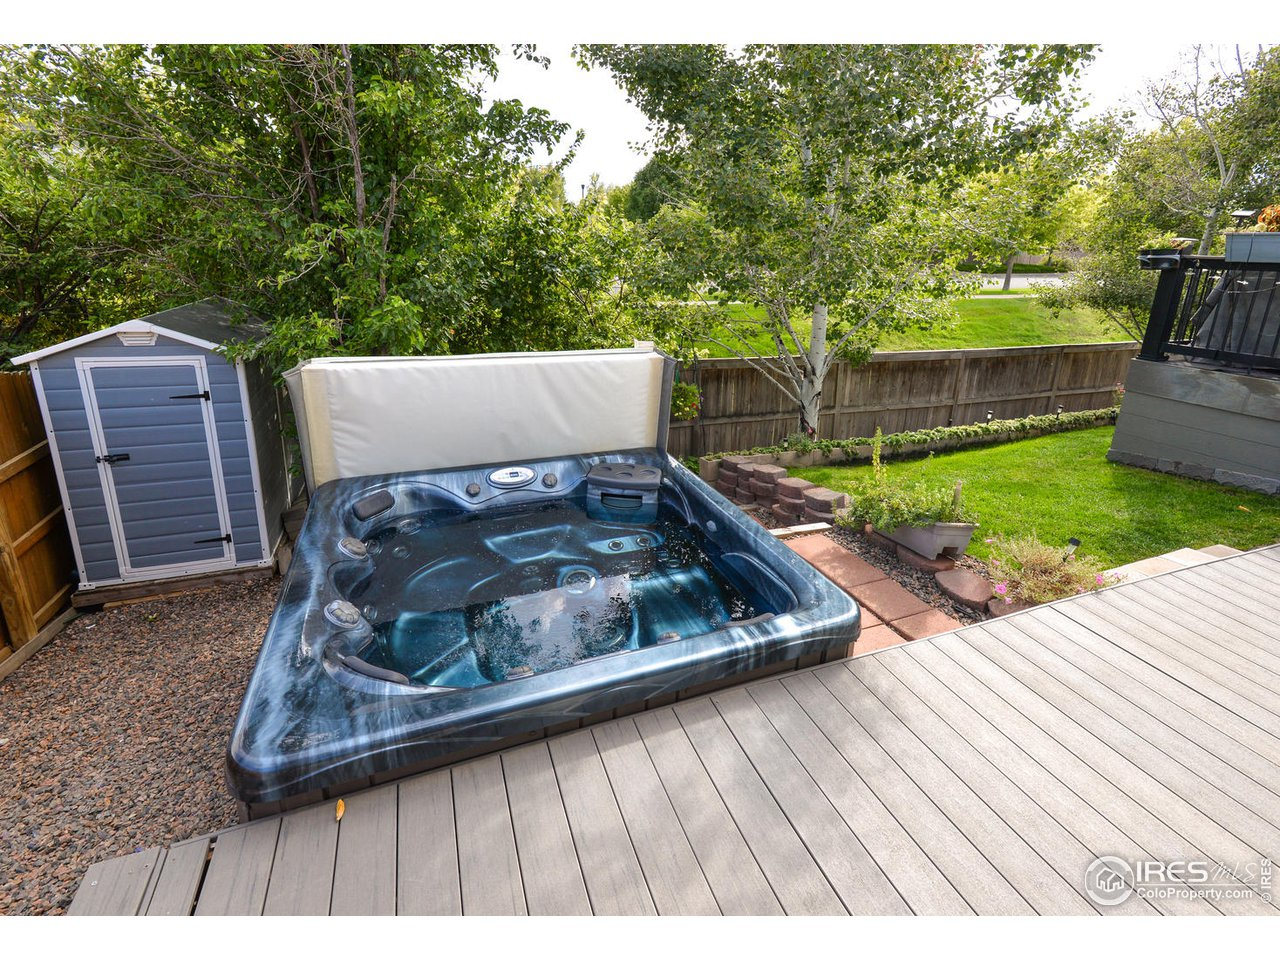 Hot Tub Area and Storage Sheds